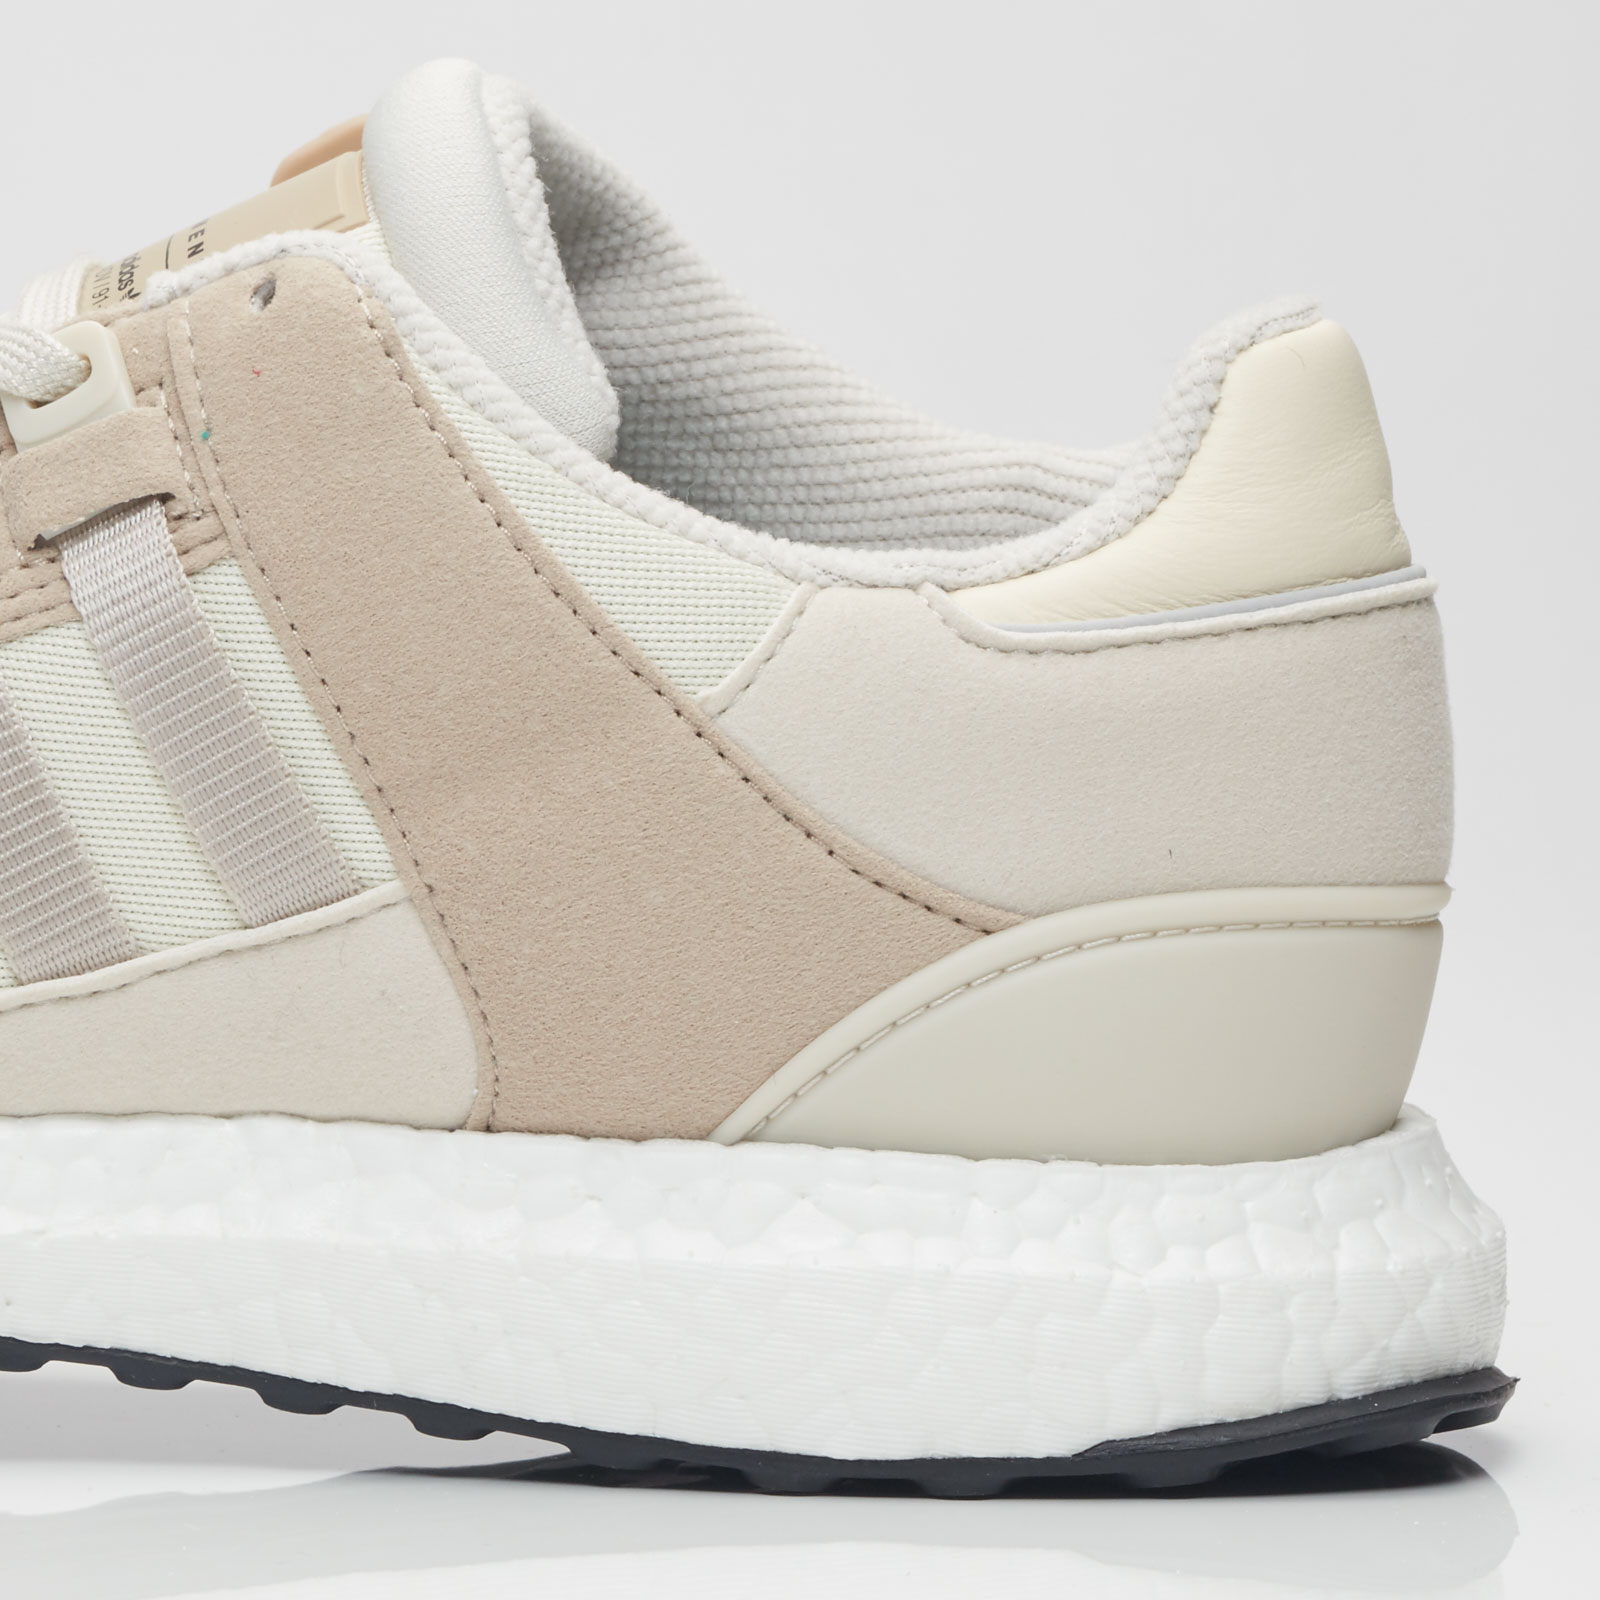 5dda57181903 adidas Equipment Support Ultra - Bb1239 - Sneakersnstuff